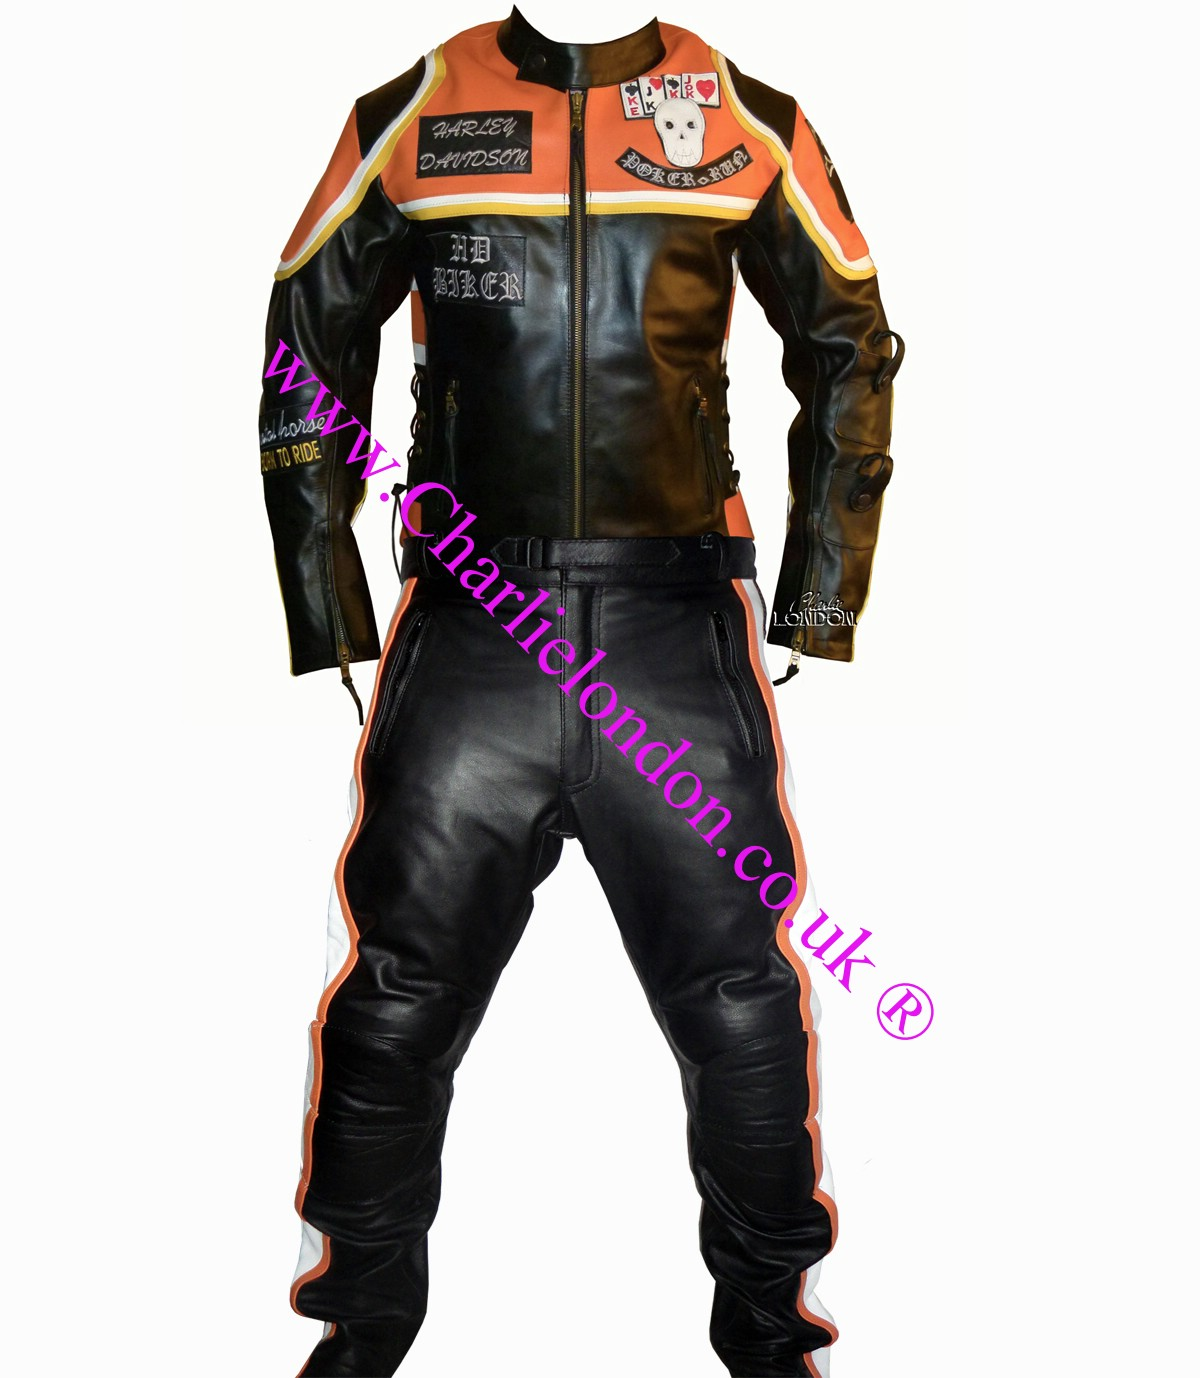 Harley Davidson Motorcycle Costumes Gloves